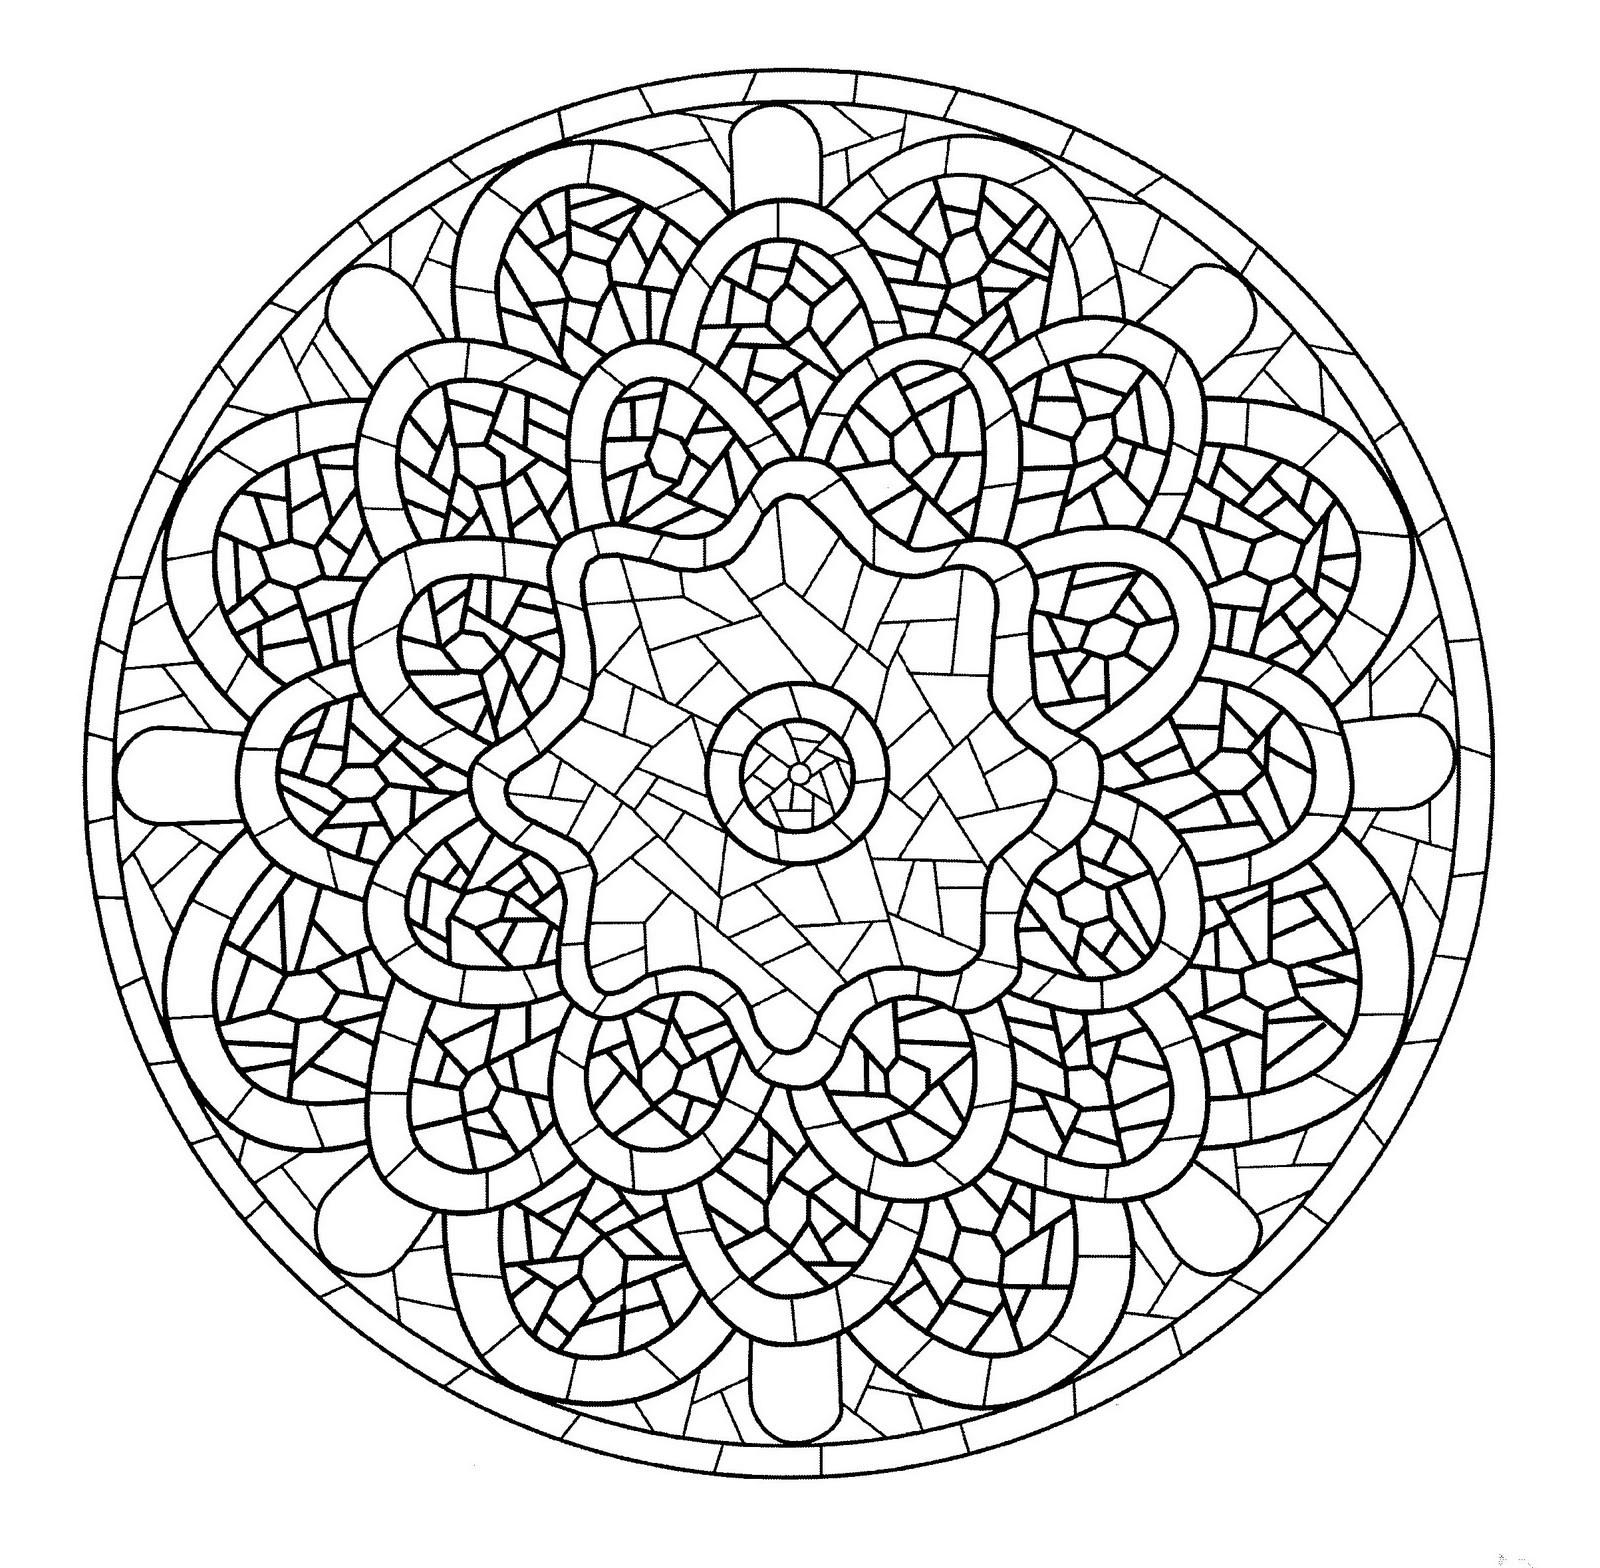 mandala a imprimer 13 coloriage mandalas coloriages. Black Bedroom Furniture Sets. Home Design Ideas